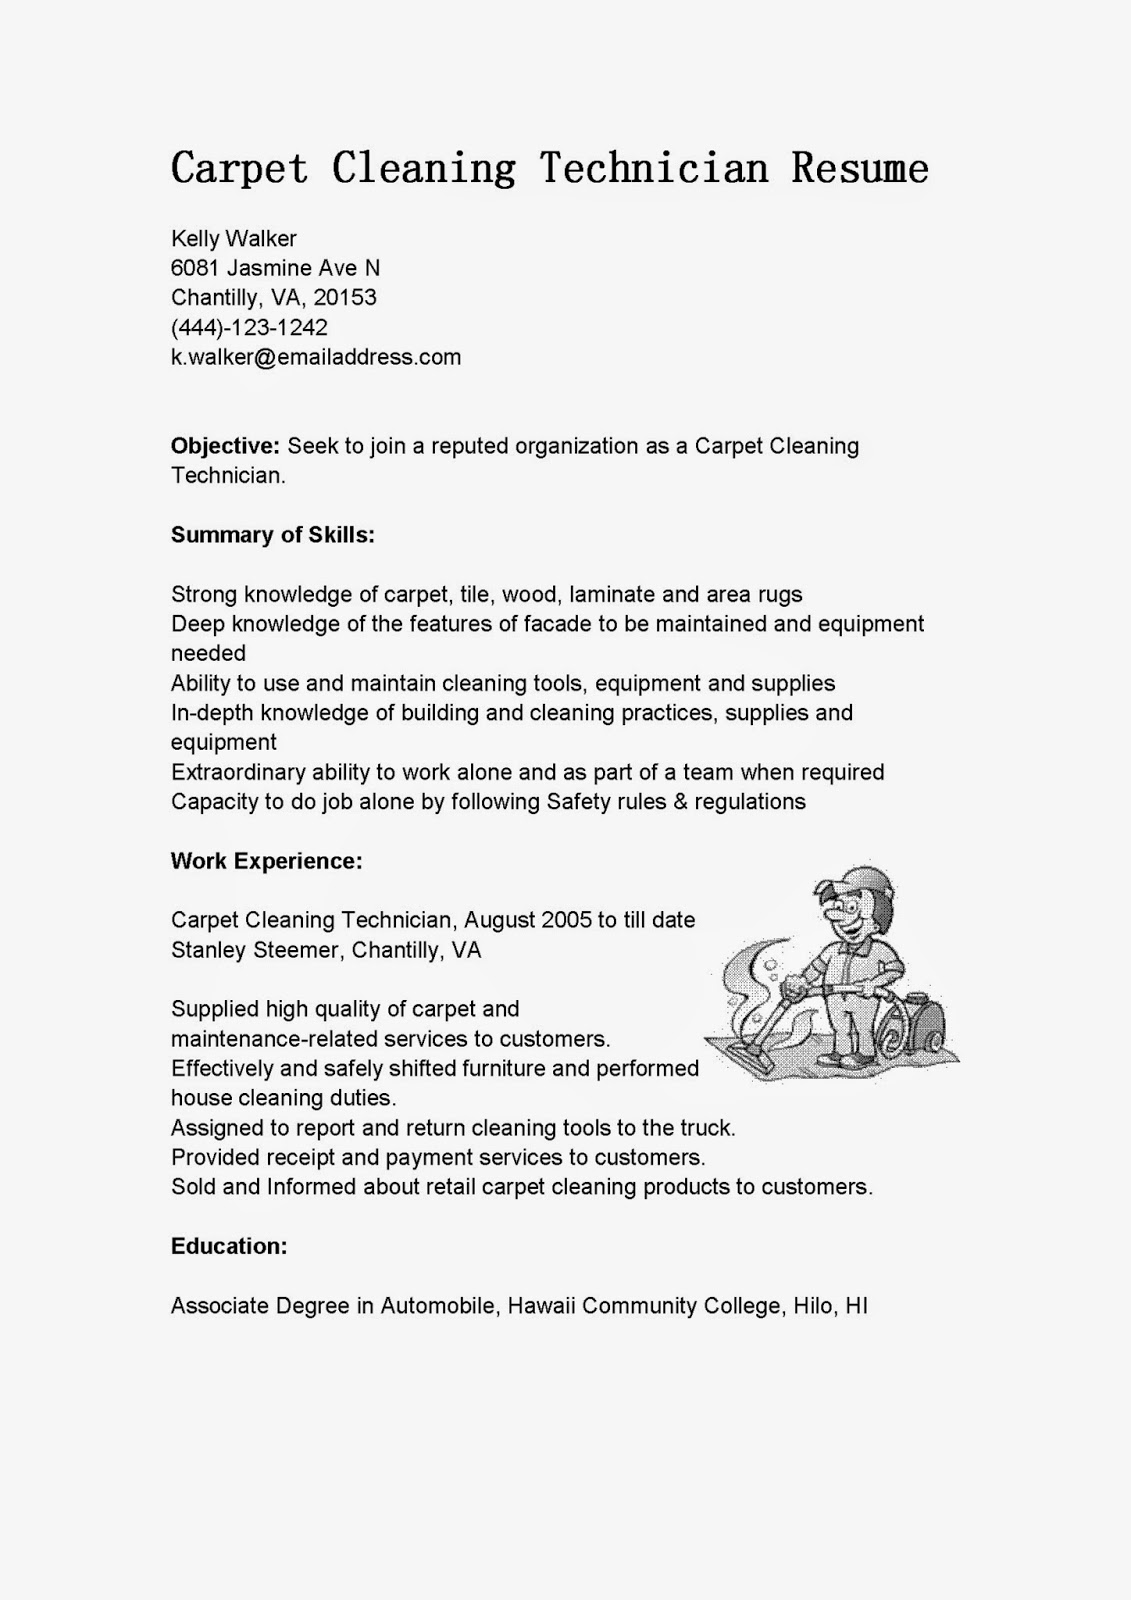 Carpet Cleaning Manager Job Description Carpet MenzilperdeNet